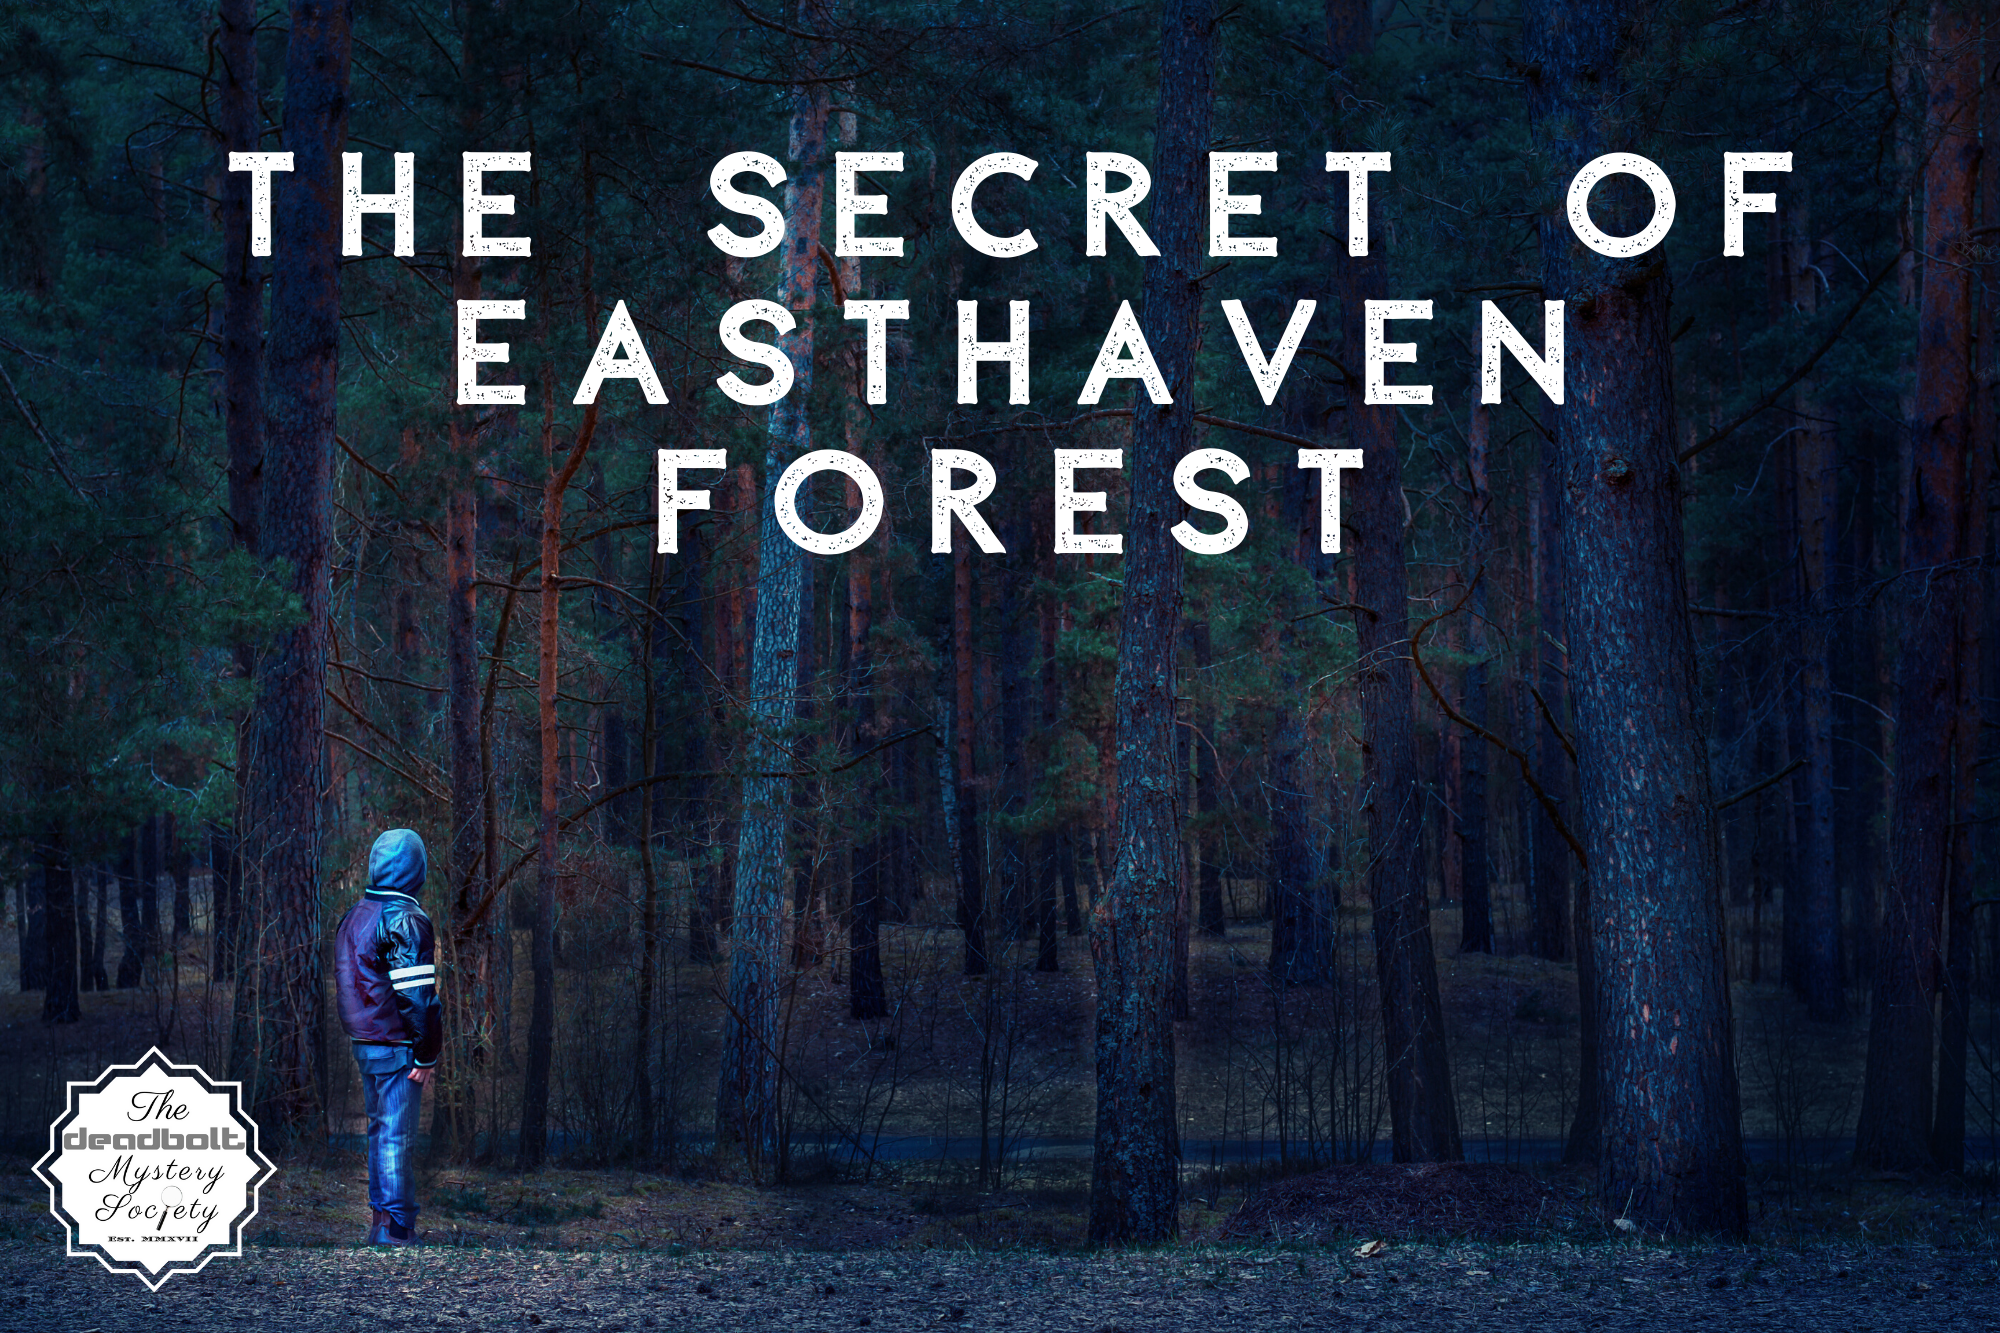 The Secret of Easthaven Forest